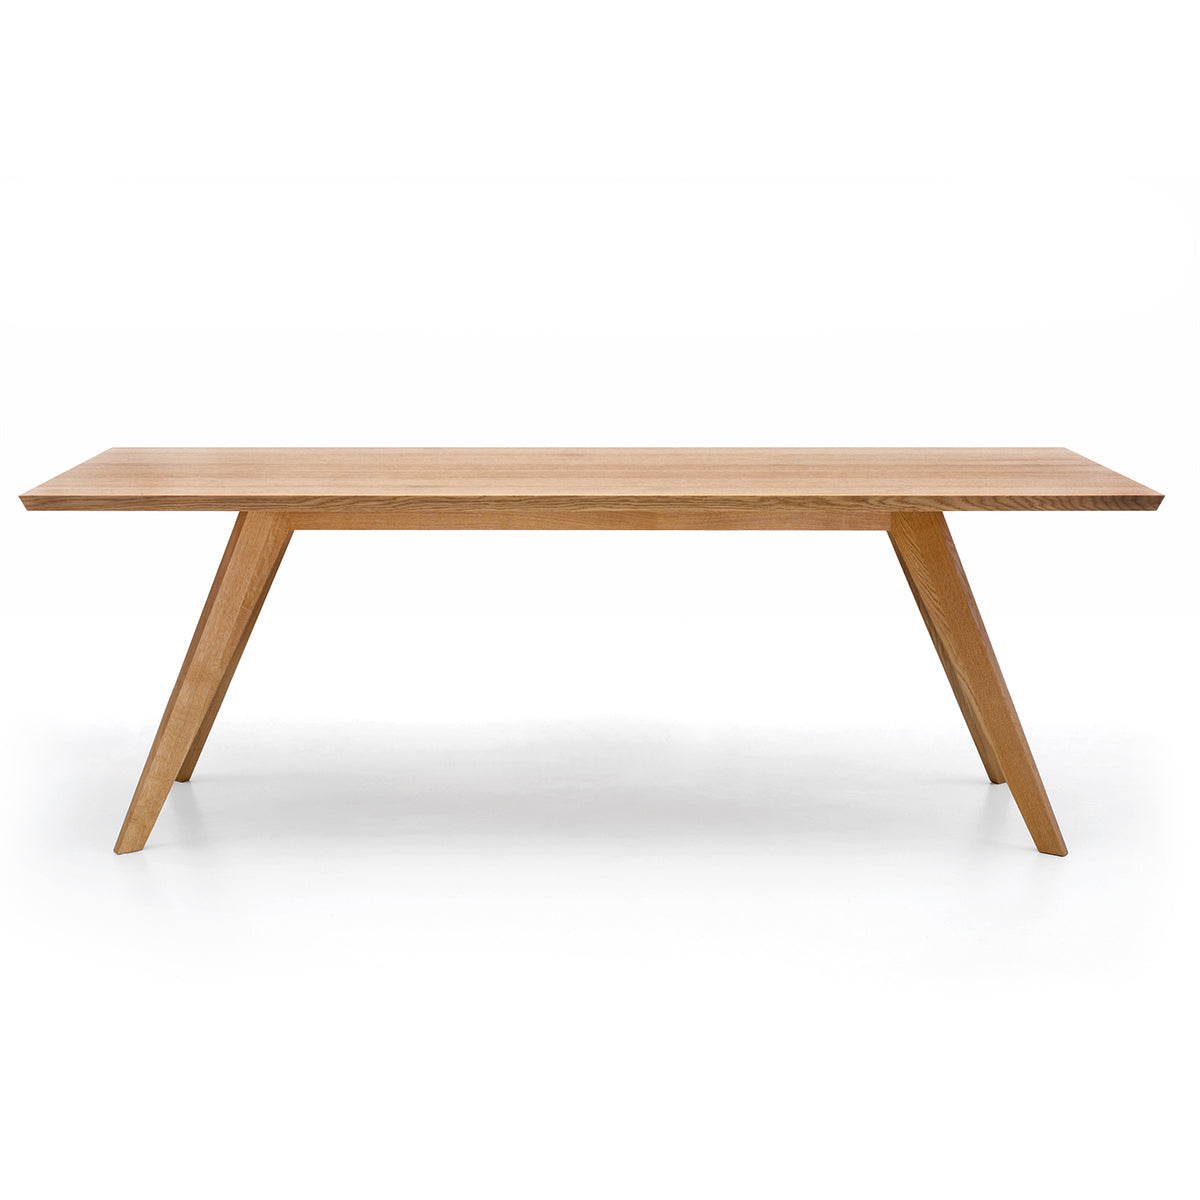 Cena Rectangular Table - Zeitraum - Do Shop